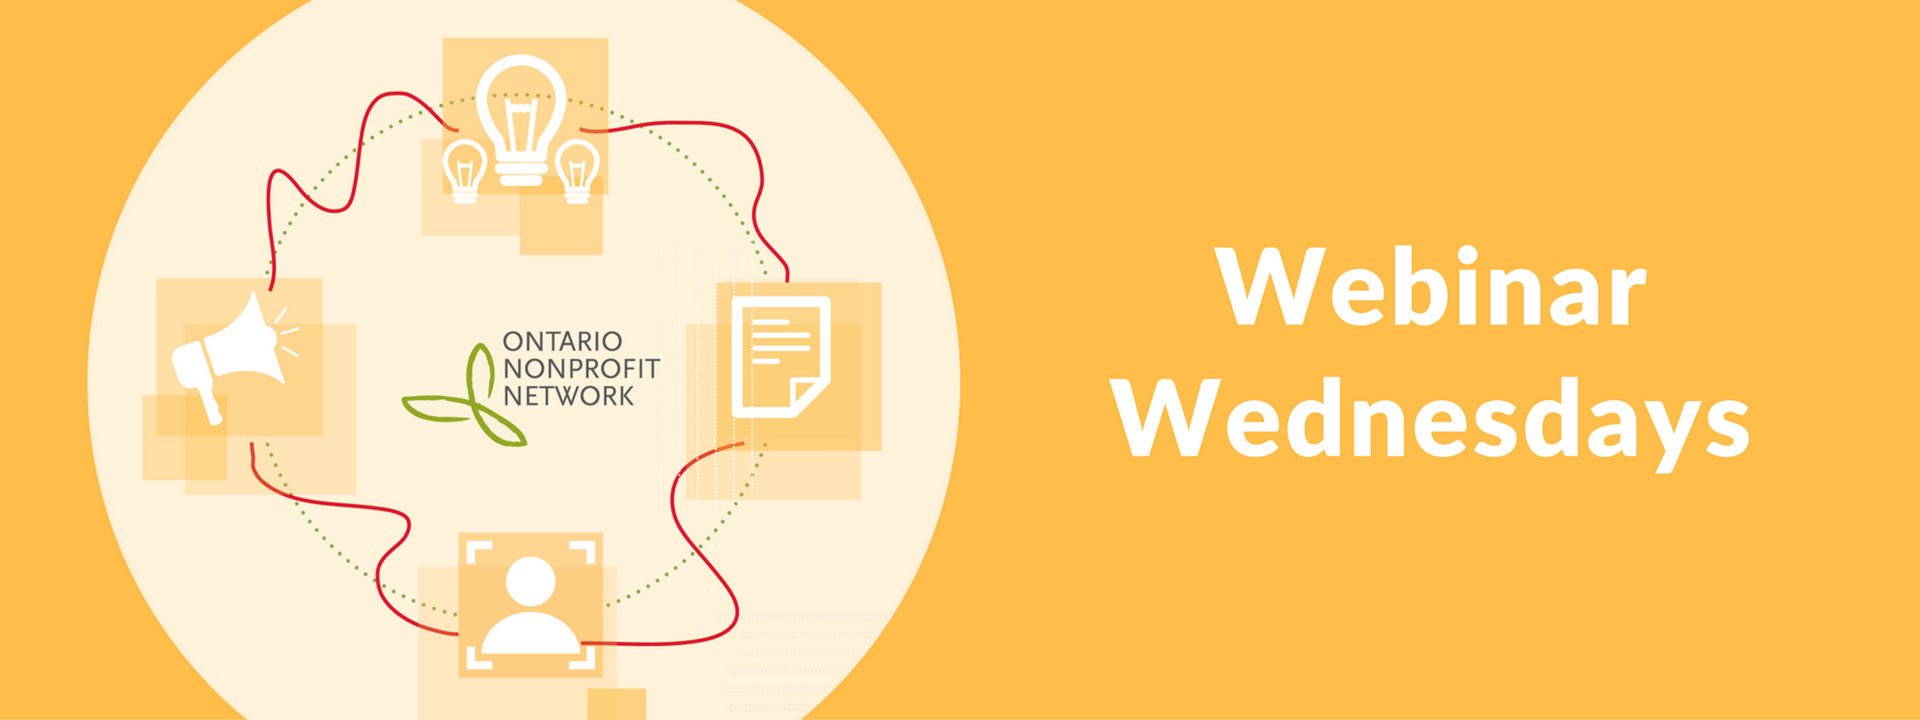 Header for webinar wednesdays